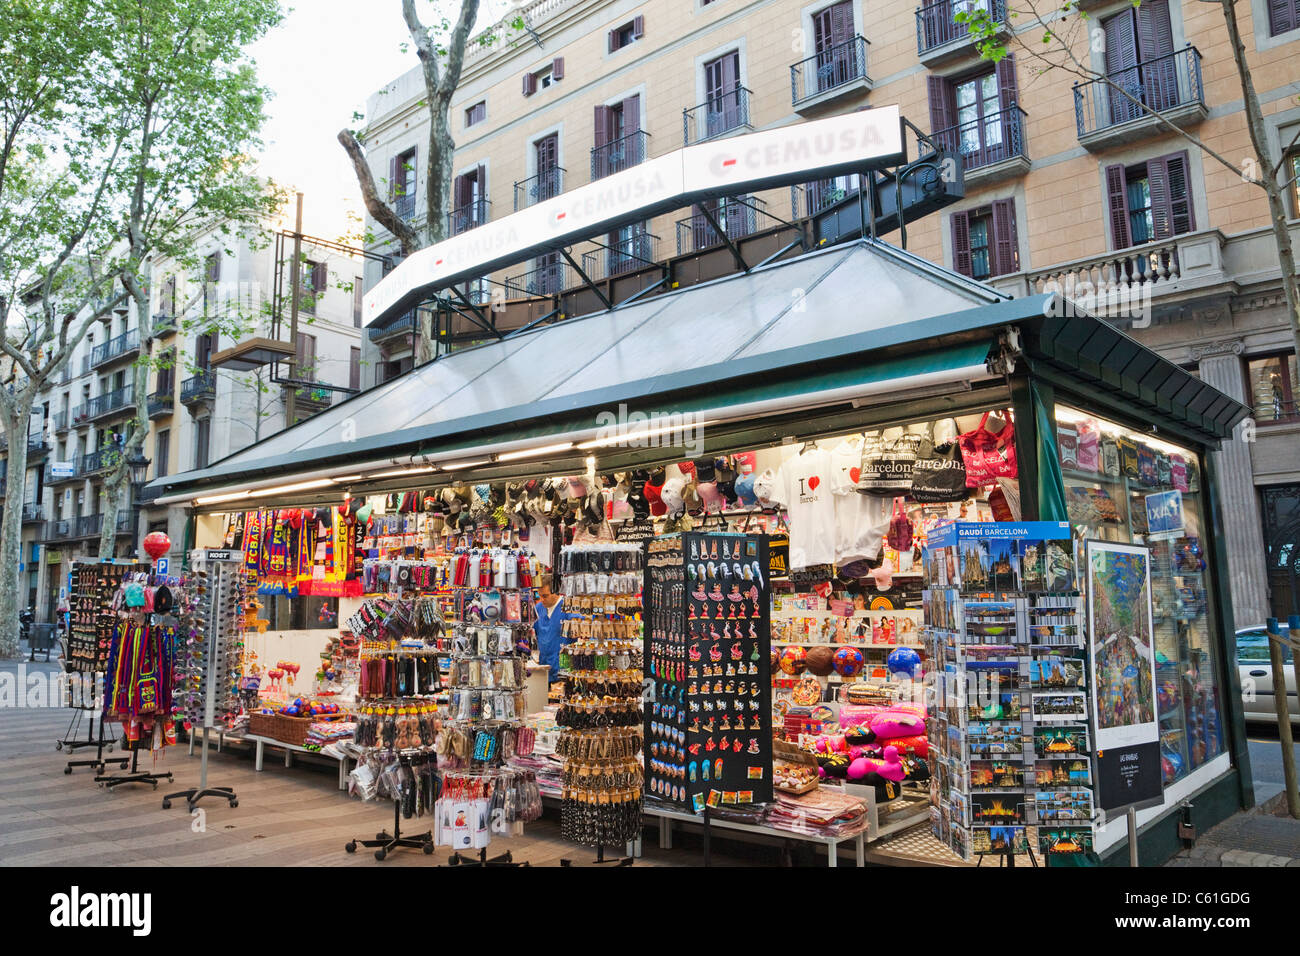 spain barcelona las ramblas souvenir kiosk stock photo royalty free image 38143548 alamy. Black Bedroom Furniture Sets. Home Design Ideas